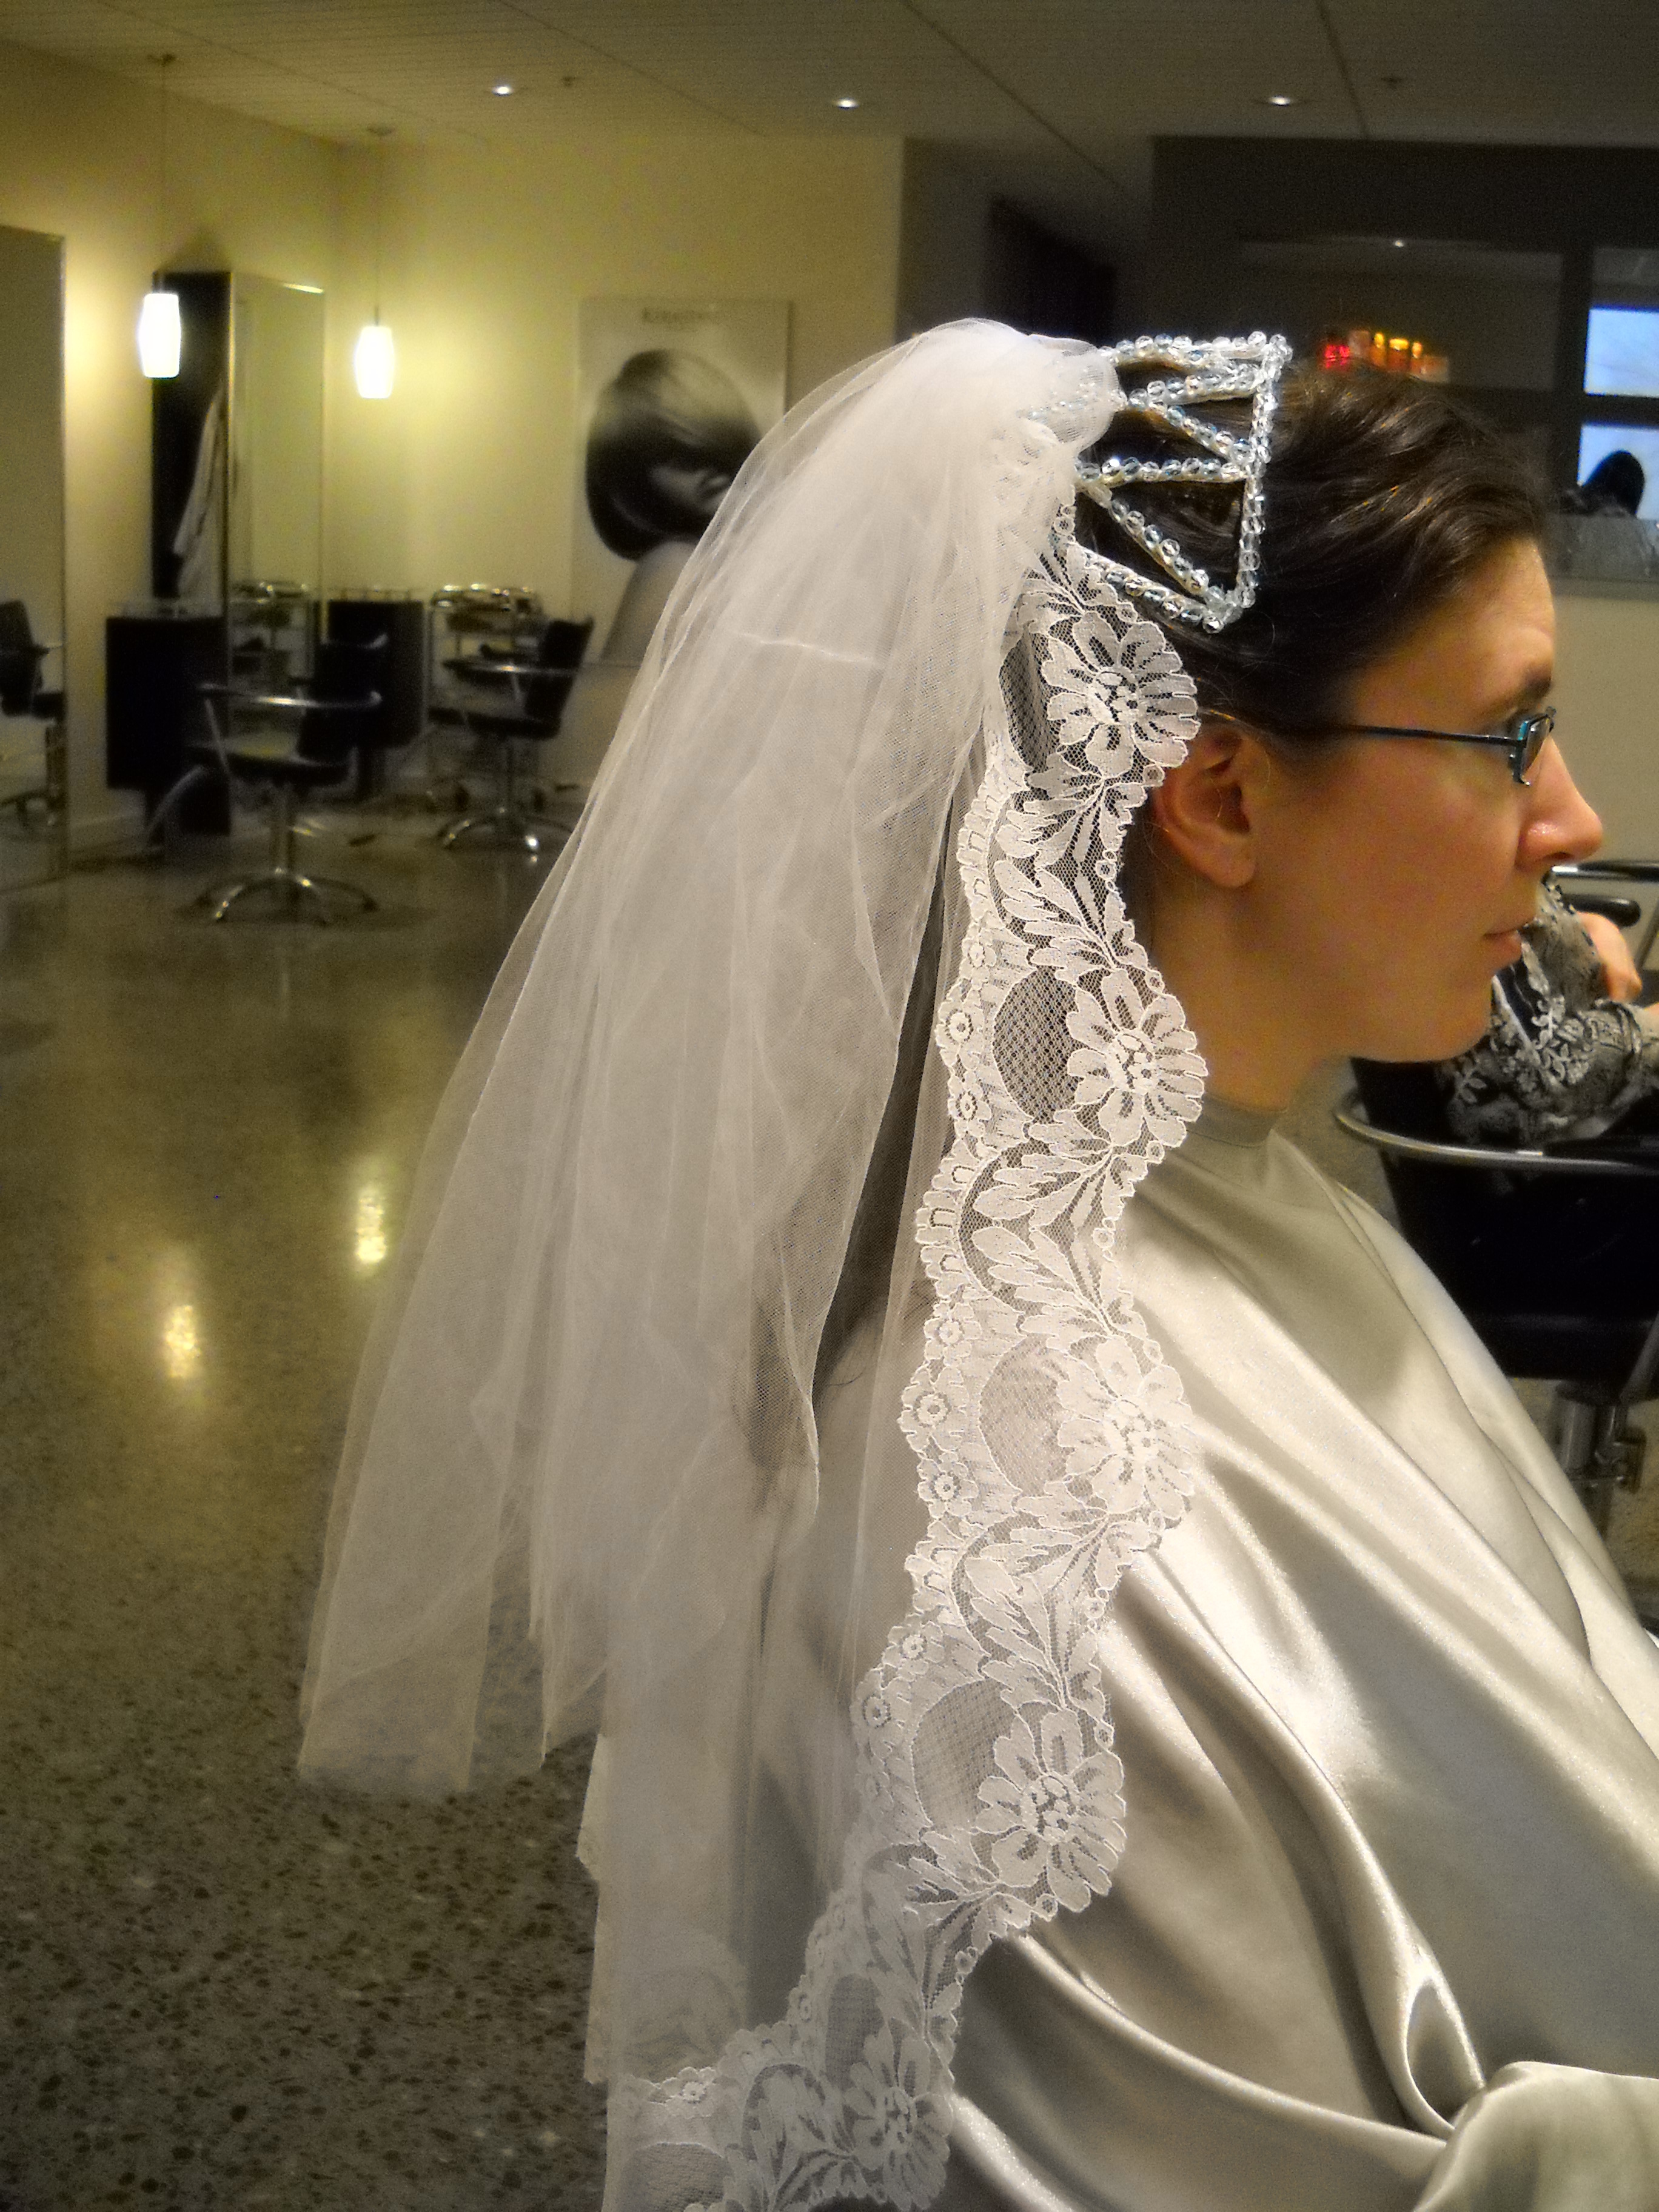 Beauty, Veils, Fashion, Curly Hair, Long Hair, Veil, Hair, Long, Up, Half, Curly, Bun, Claytonandshauna